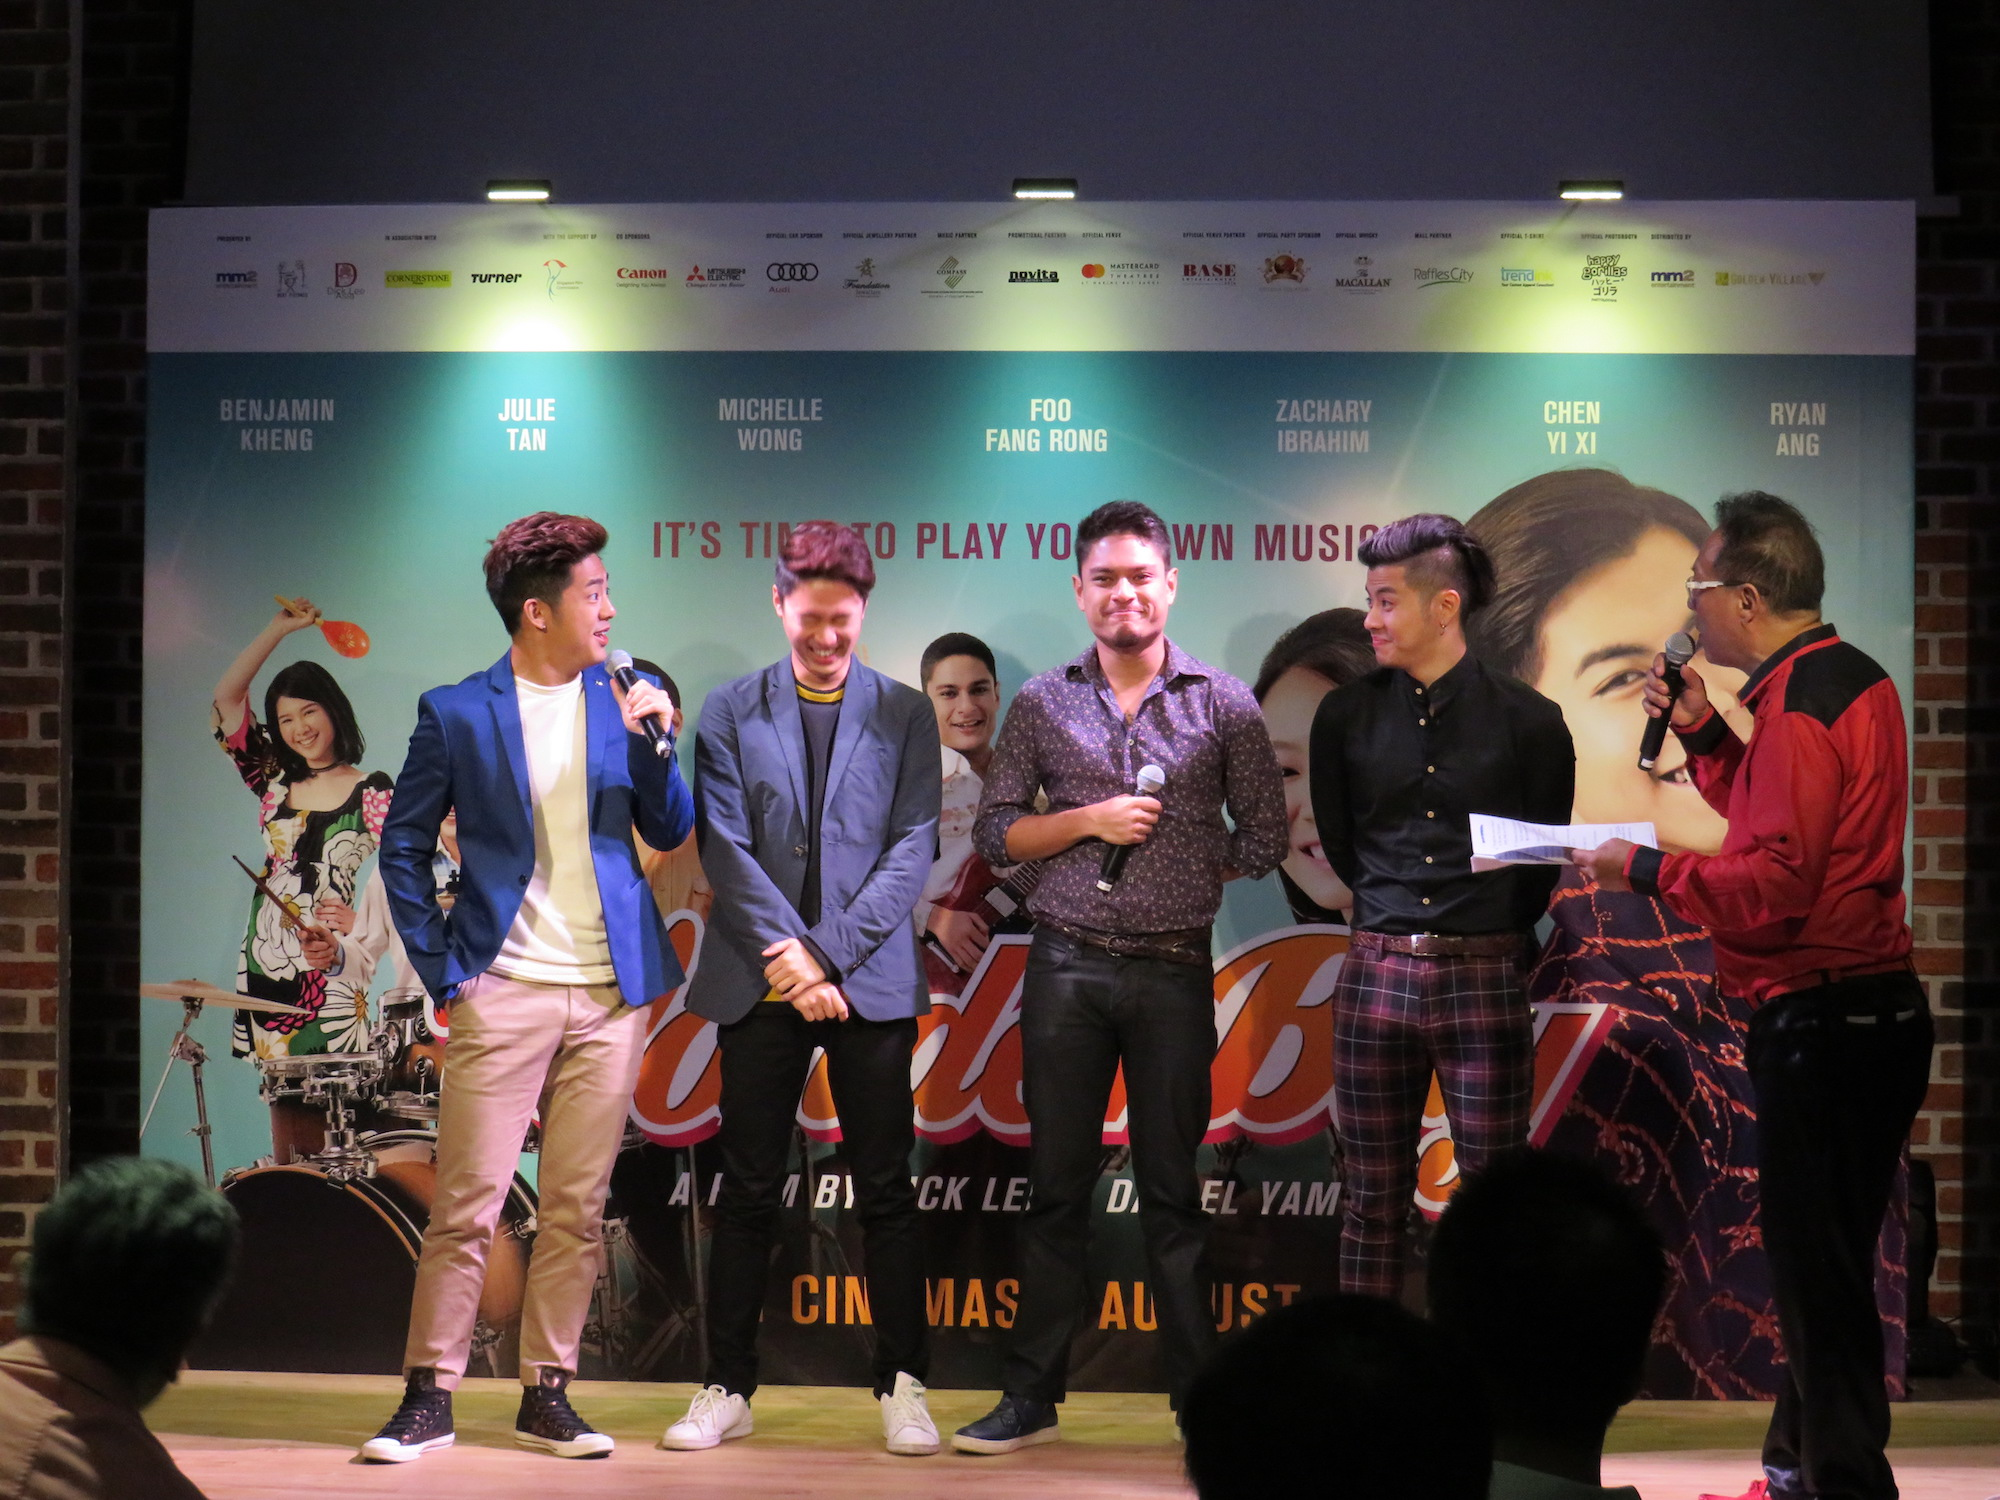 "Ryan Ang, Chen Yi Xi, Zachary Ibrahim, and Benjamin Kheng star in ""Wonder Boy""."